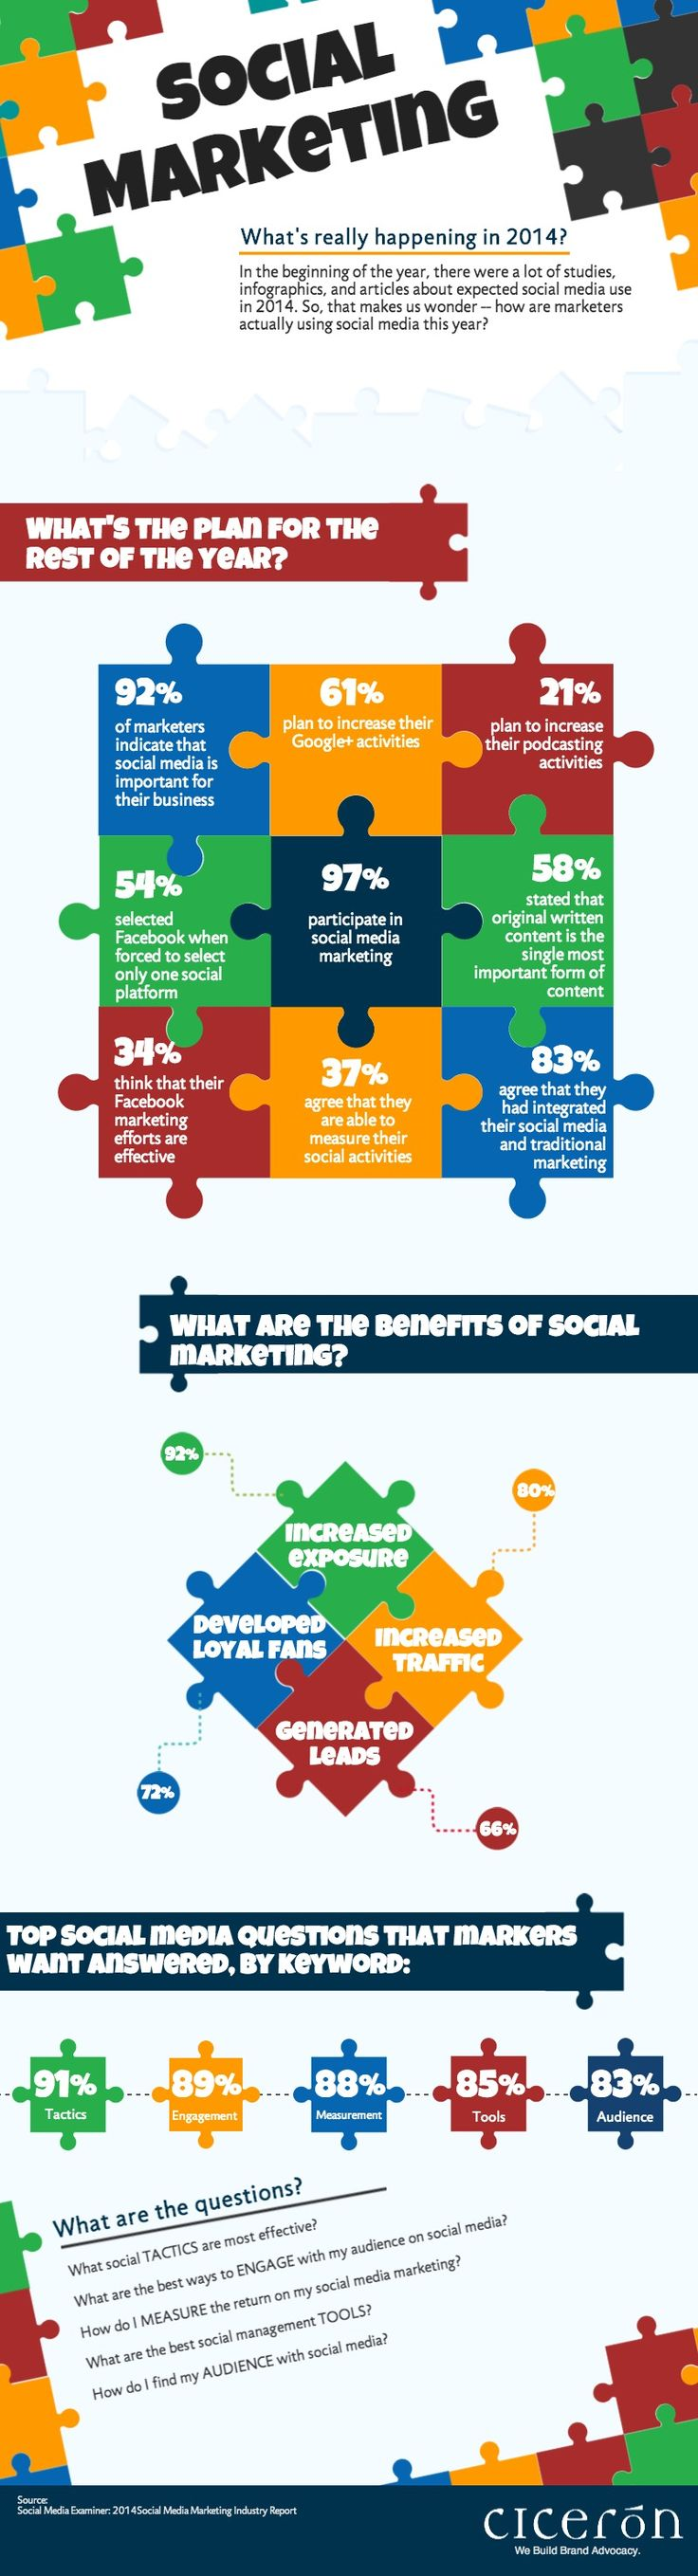 Social Marketing in 2014 - What's happening out there !!! Trends and Stats #Infographic #socialmedia #marketing